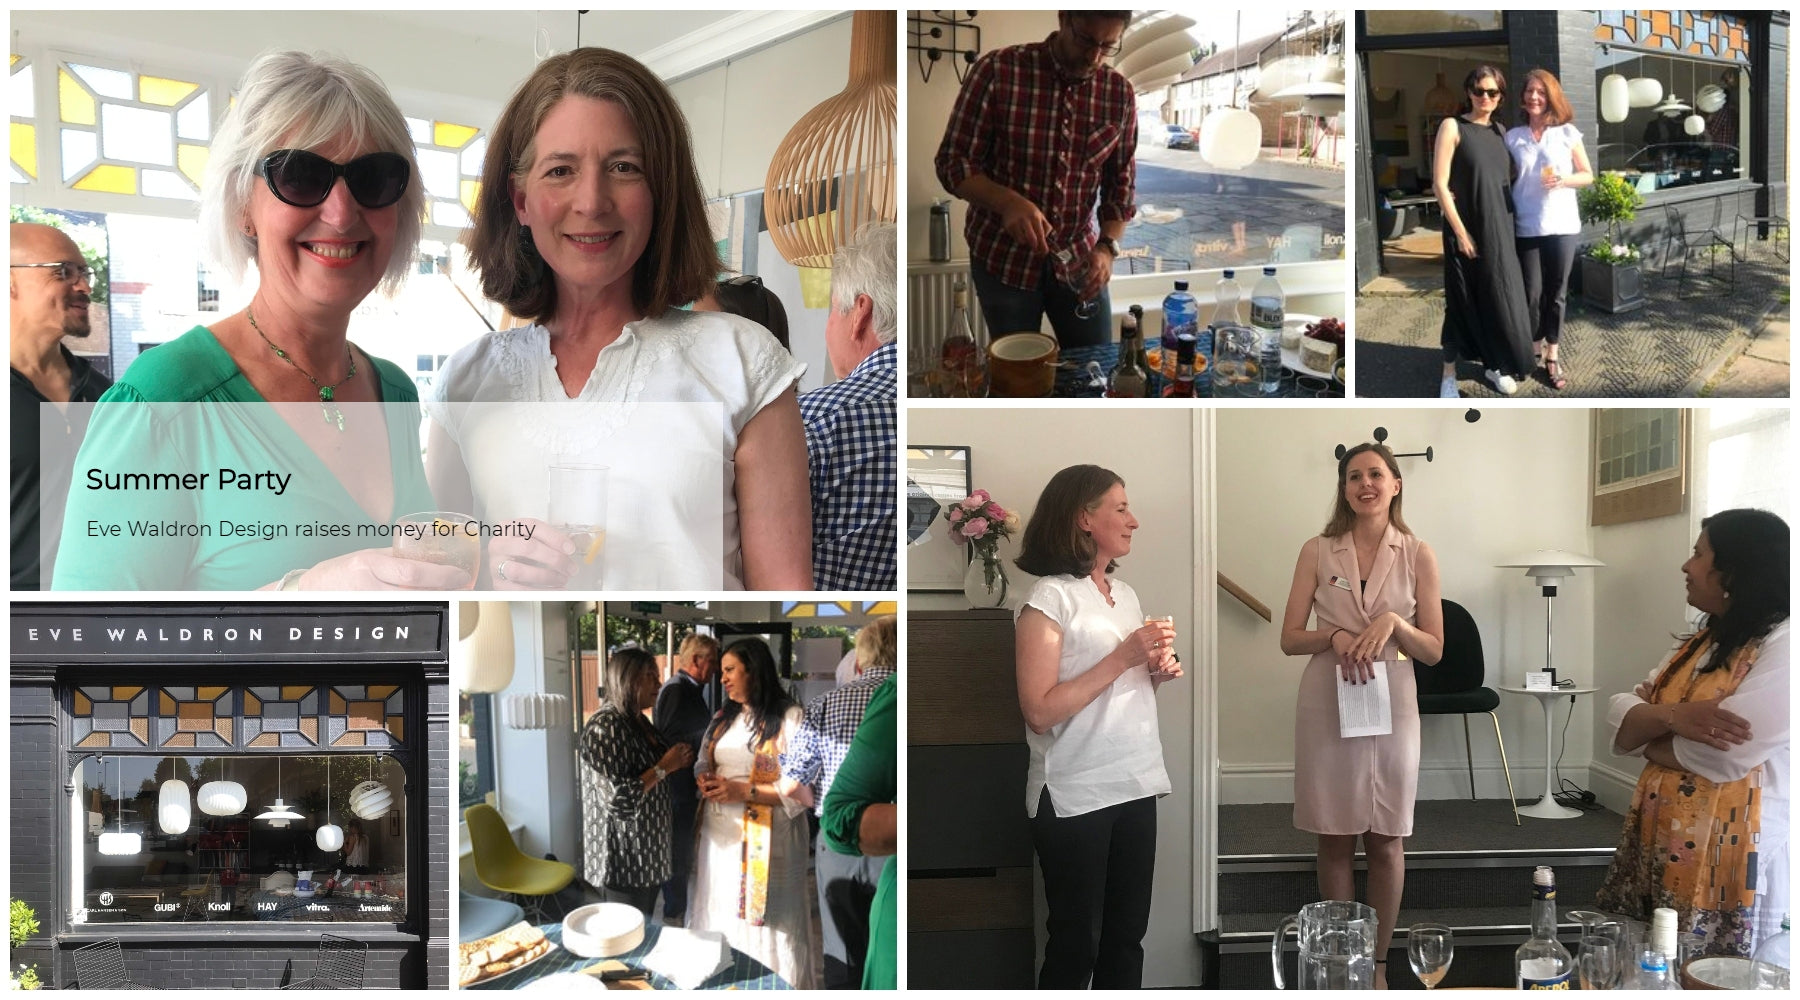 Eve Waldron Design raises money for Charity at Summer Party